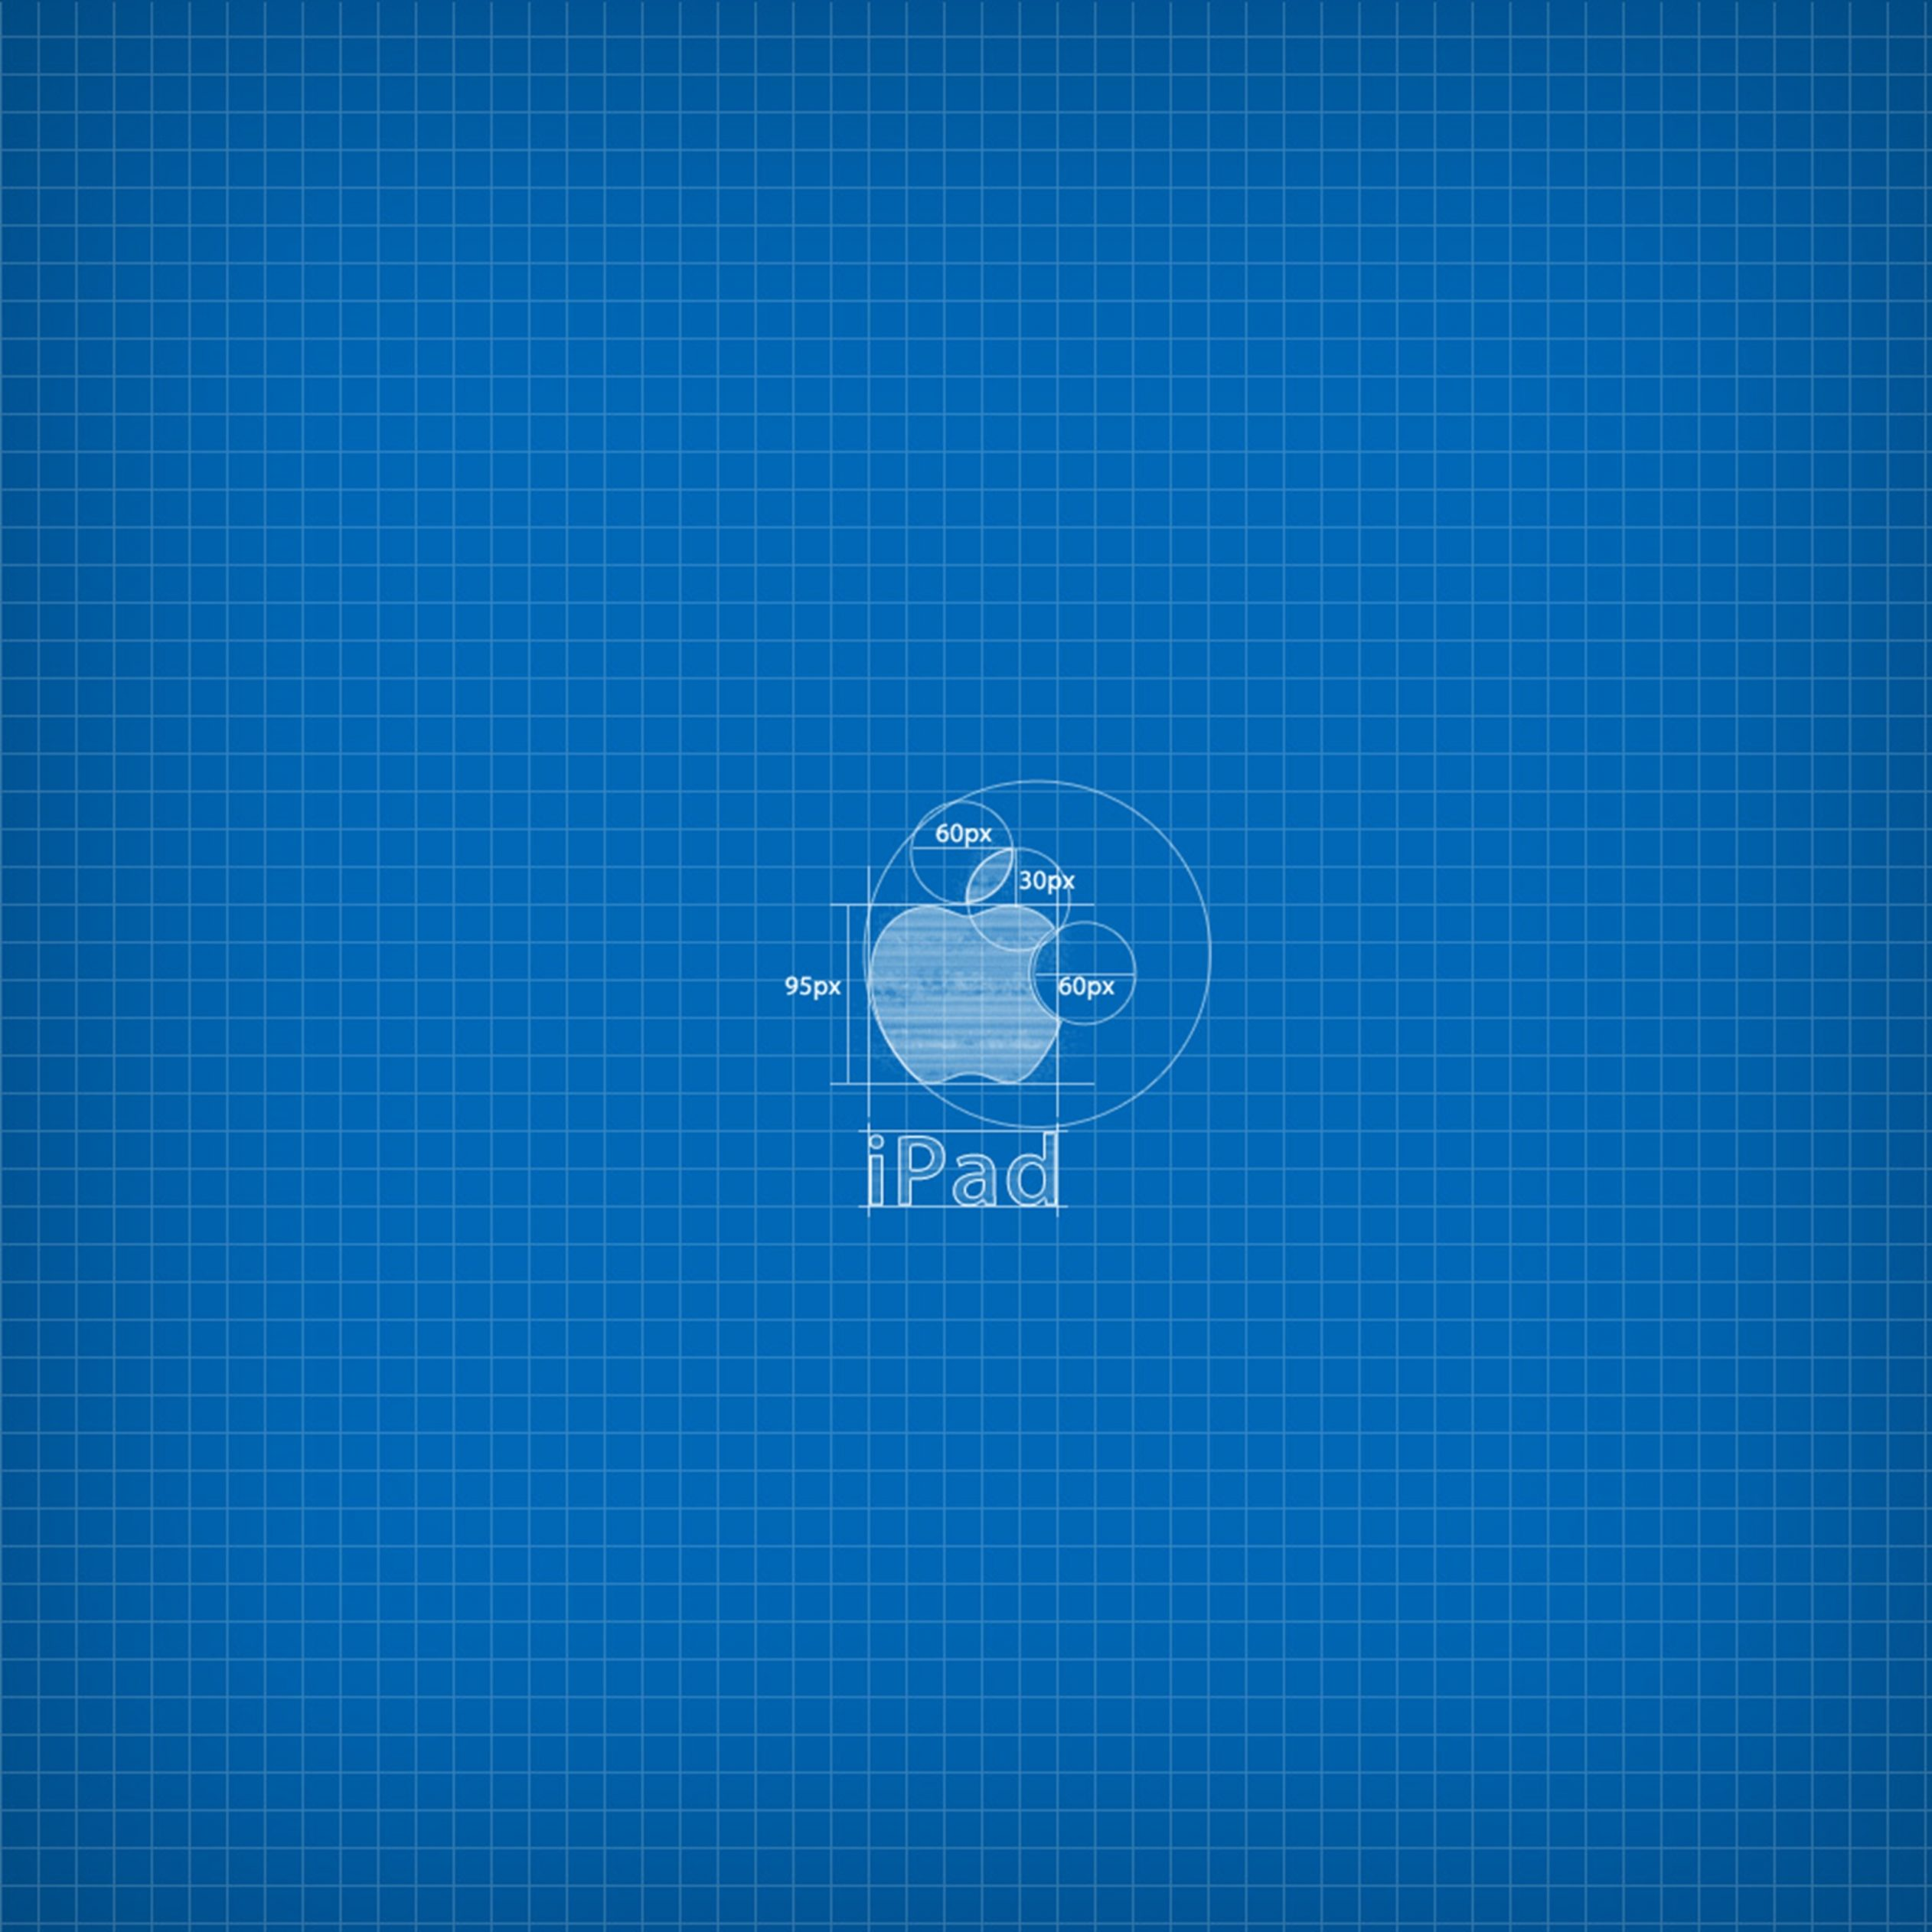 2524x2524 Parallax wallpaper 4k Apple Blueprint Ipad Wallpaper 2524x2524 pixels resolution